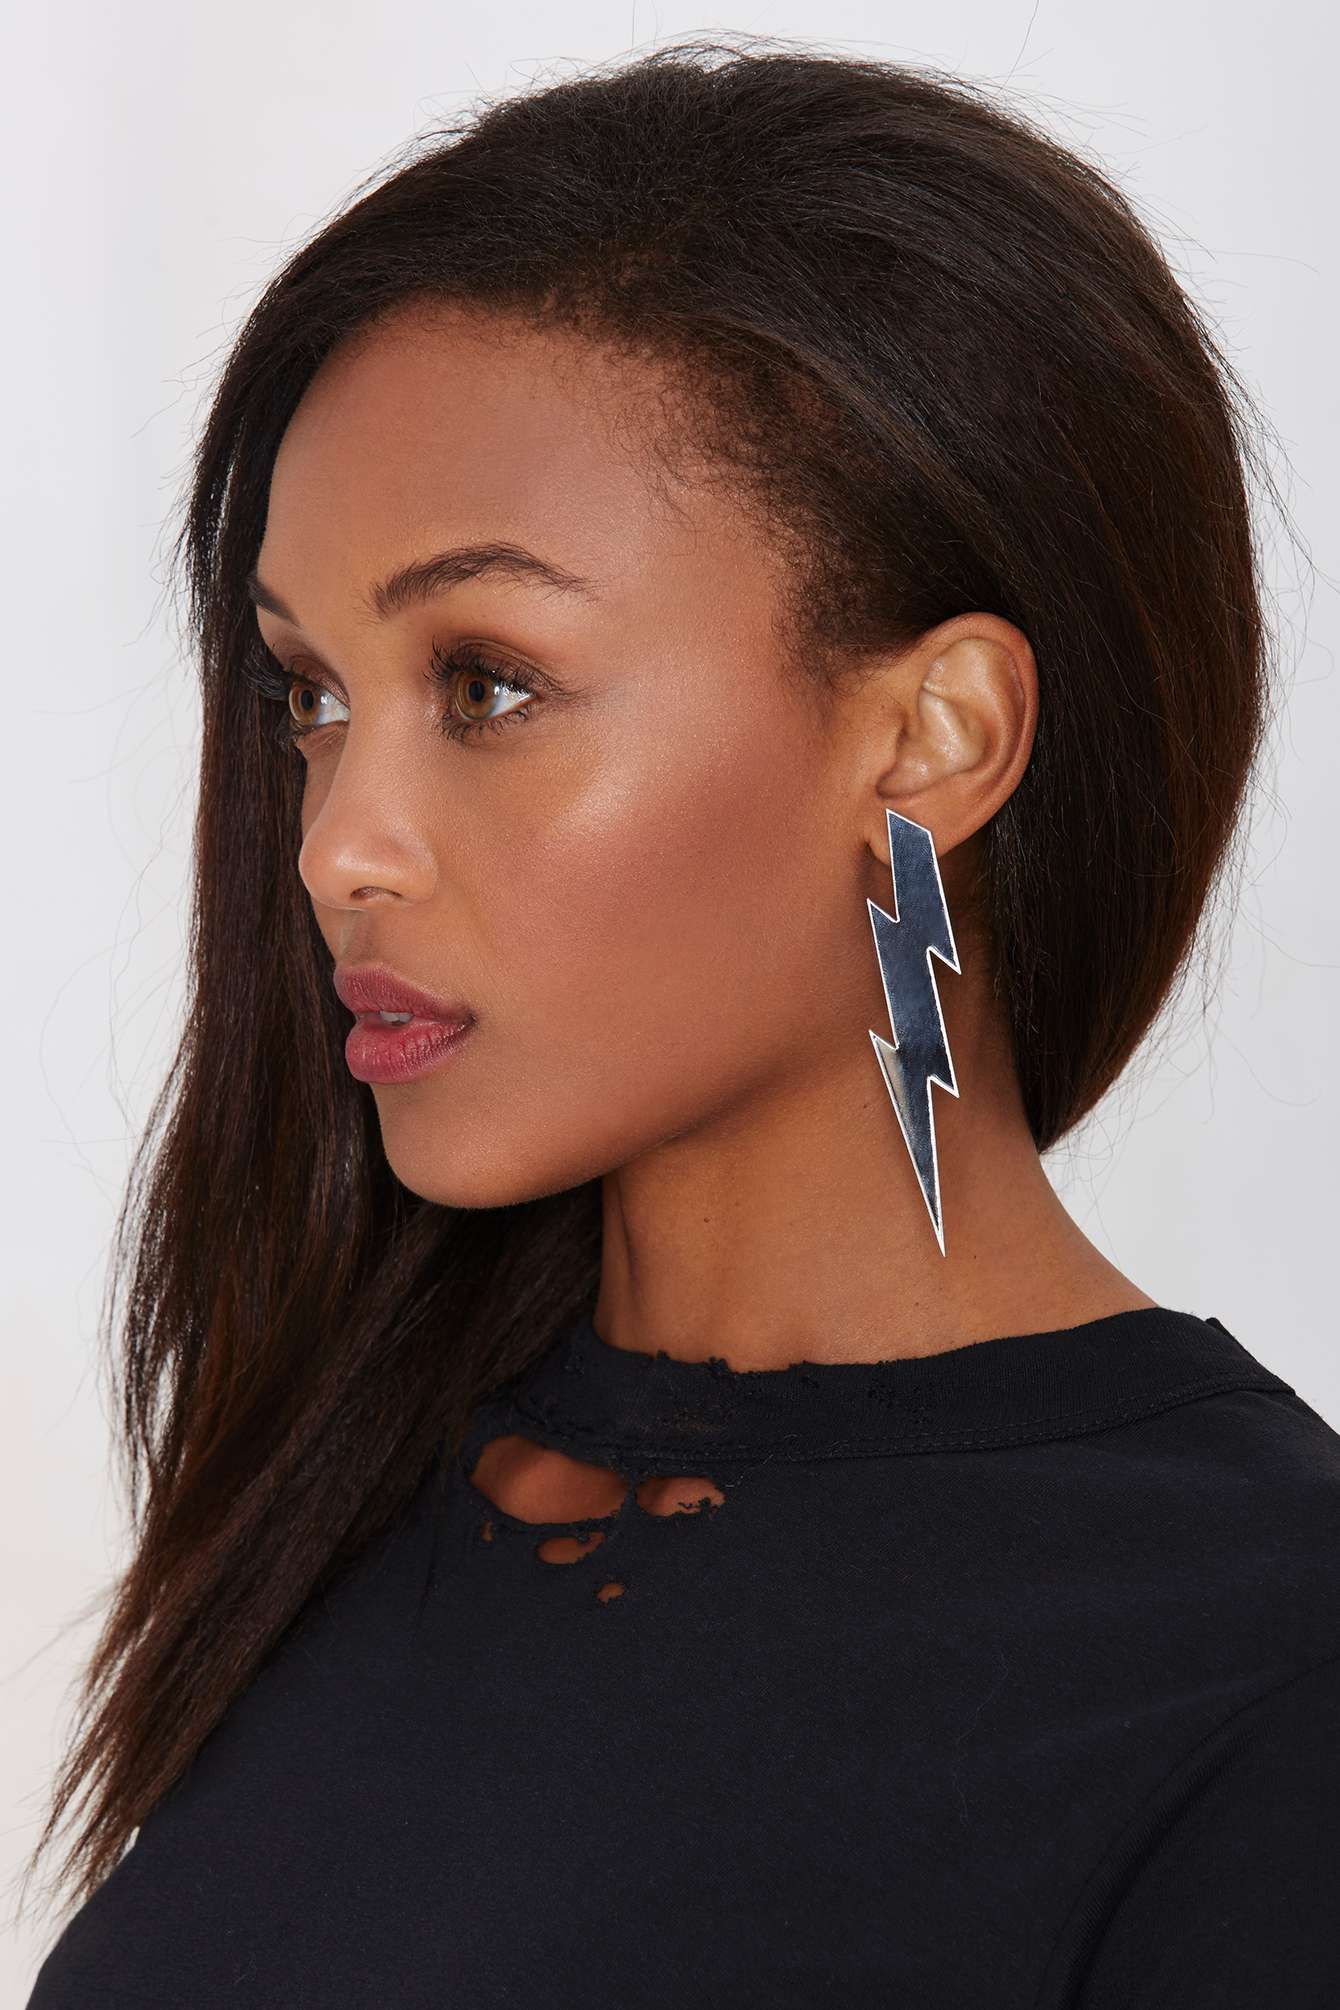 Strike Out Mirrored Earrings   Nasty Gal   My Style   Pinterest ... 8c56e828e9